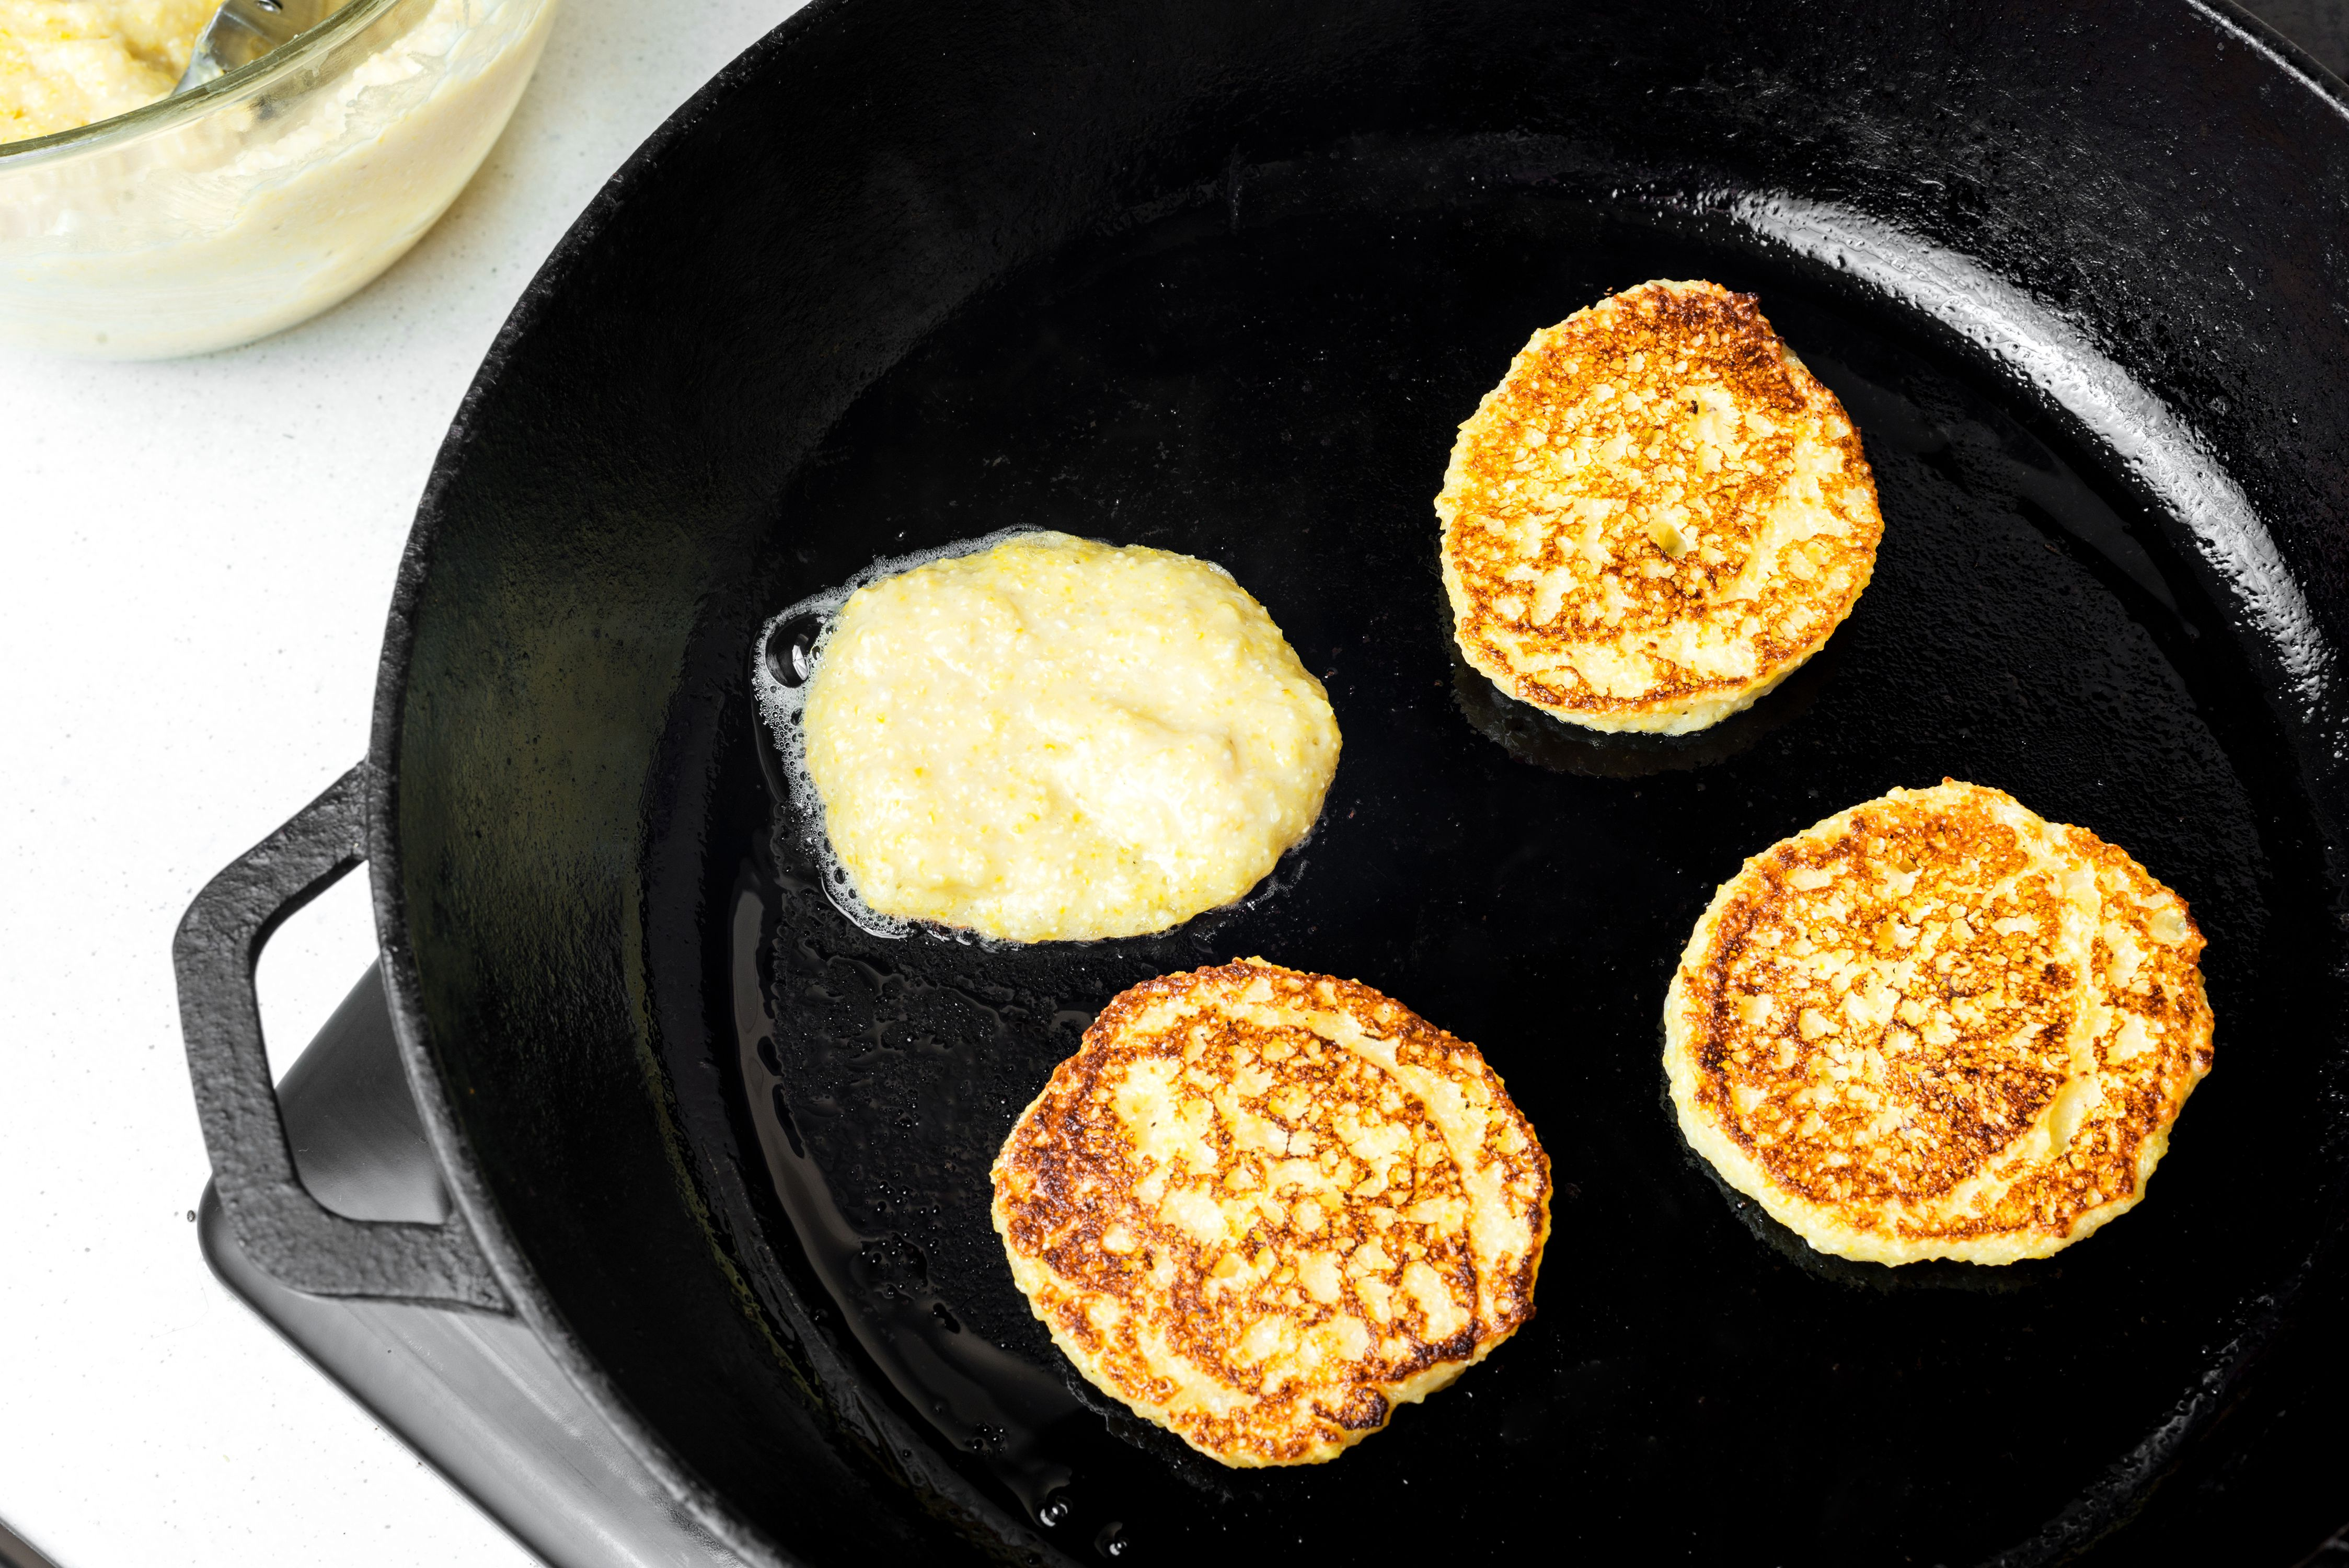 Johnnycakes being cooked on a skillet